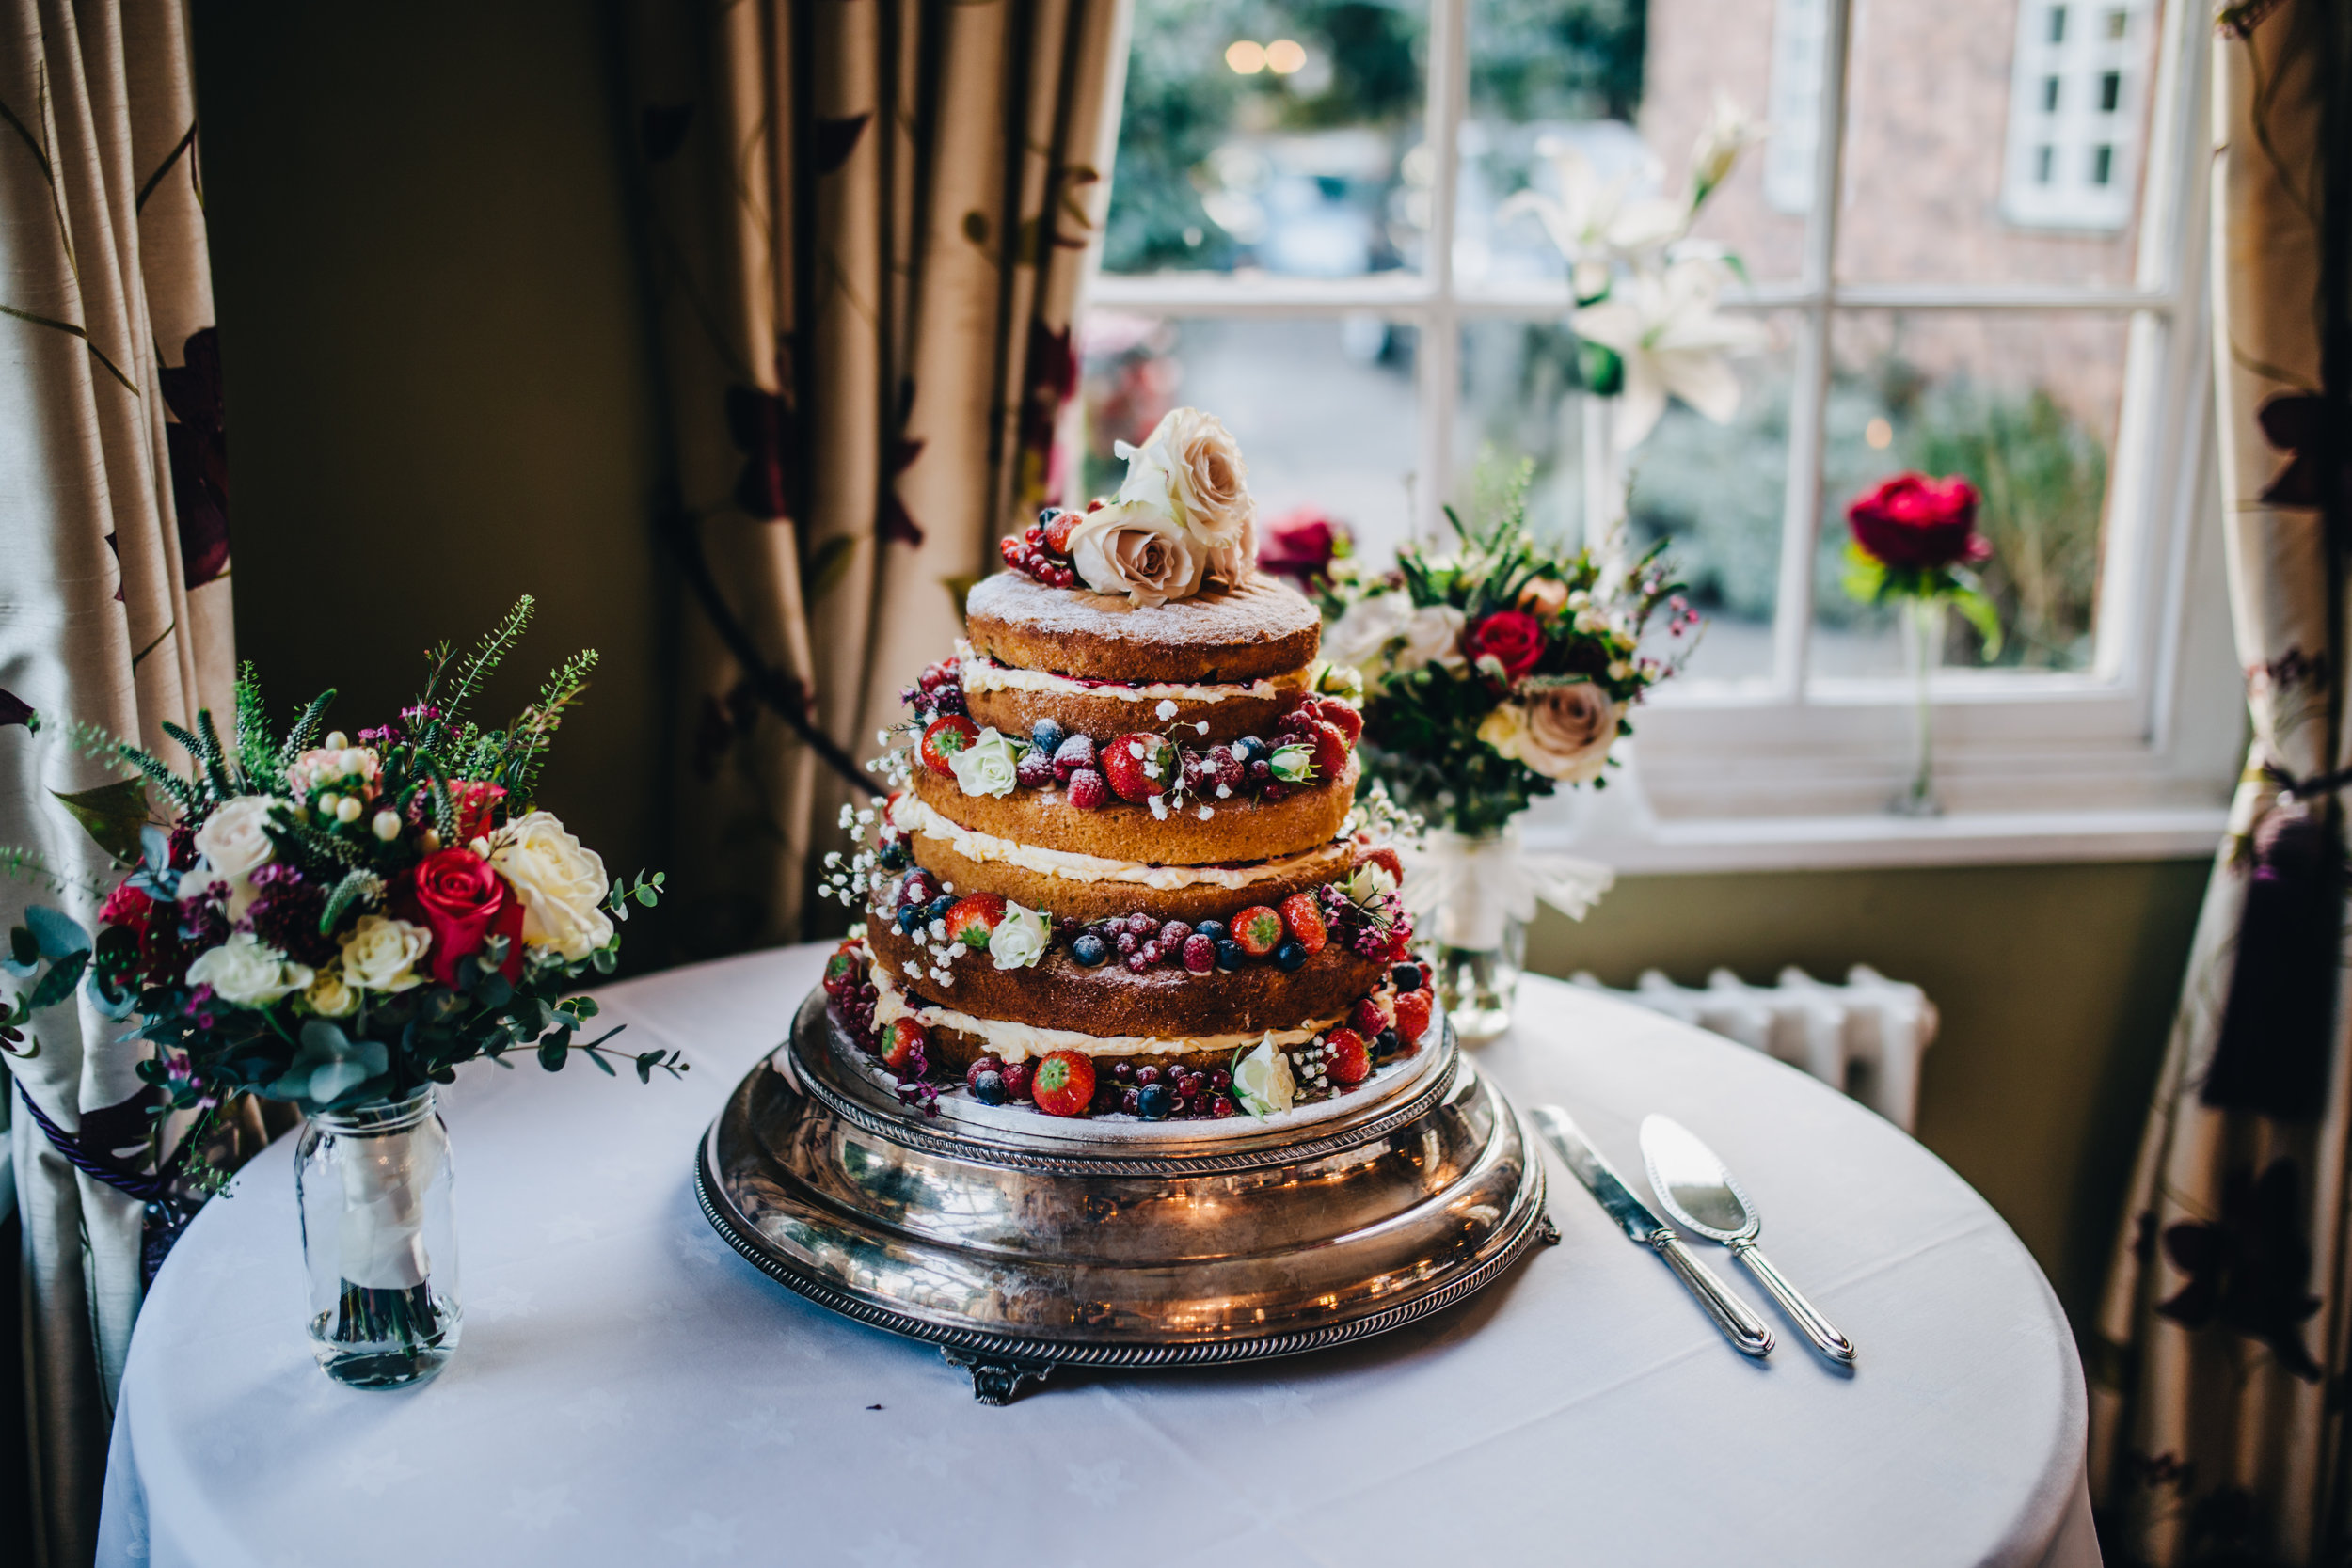 naked cake - Mytton and Mermaid wedding